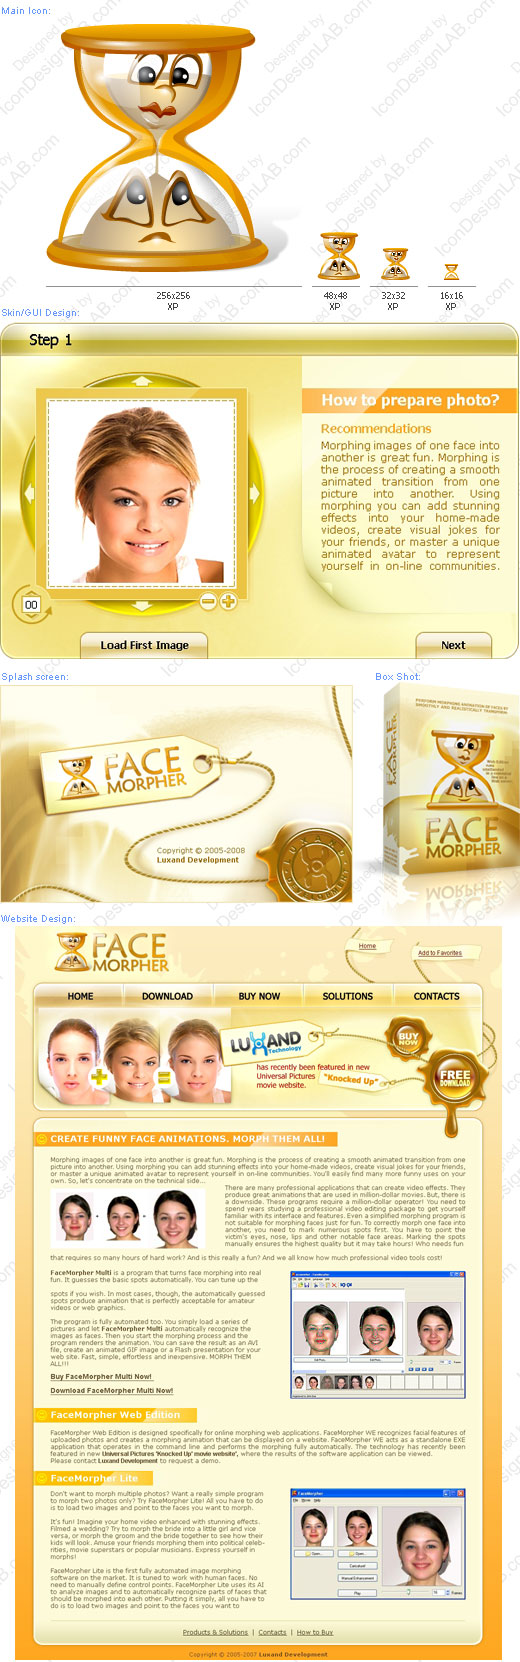 Software Identity Design for Face Morpher